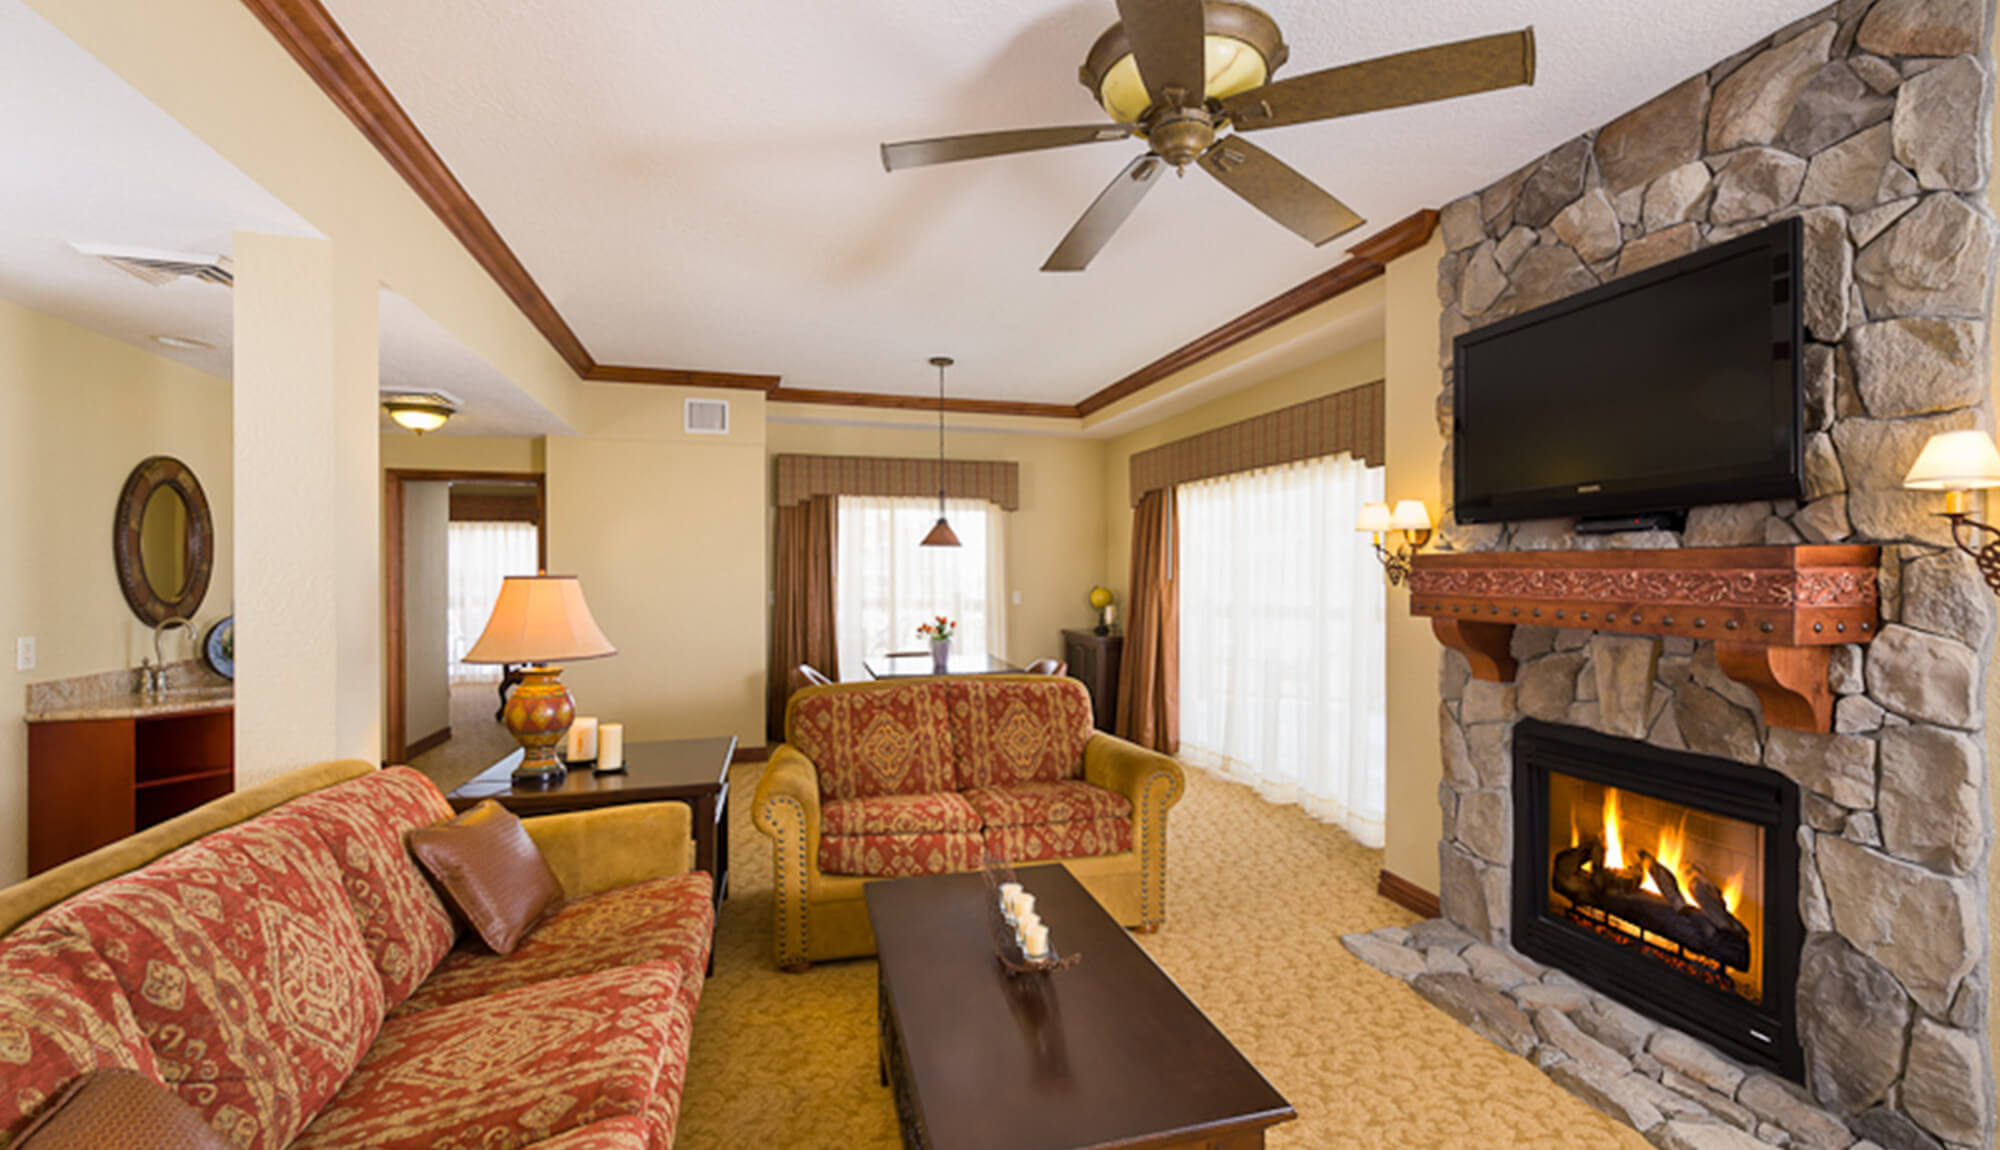 Living Area with fireplace and flat-screen TV in Luxury Four-Bedroom Villa | Westgate Park City Resort & Spa